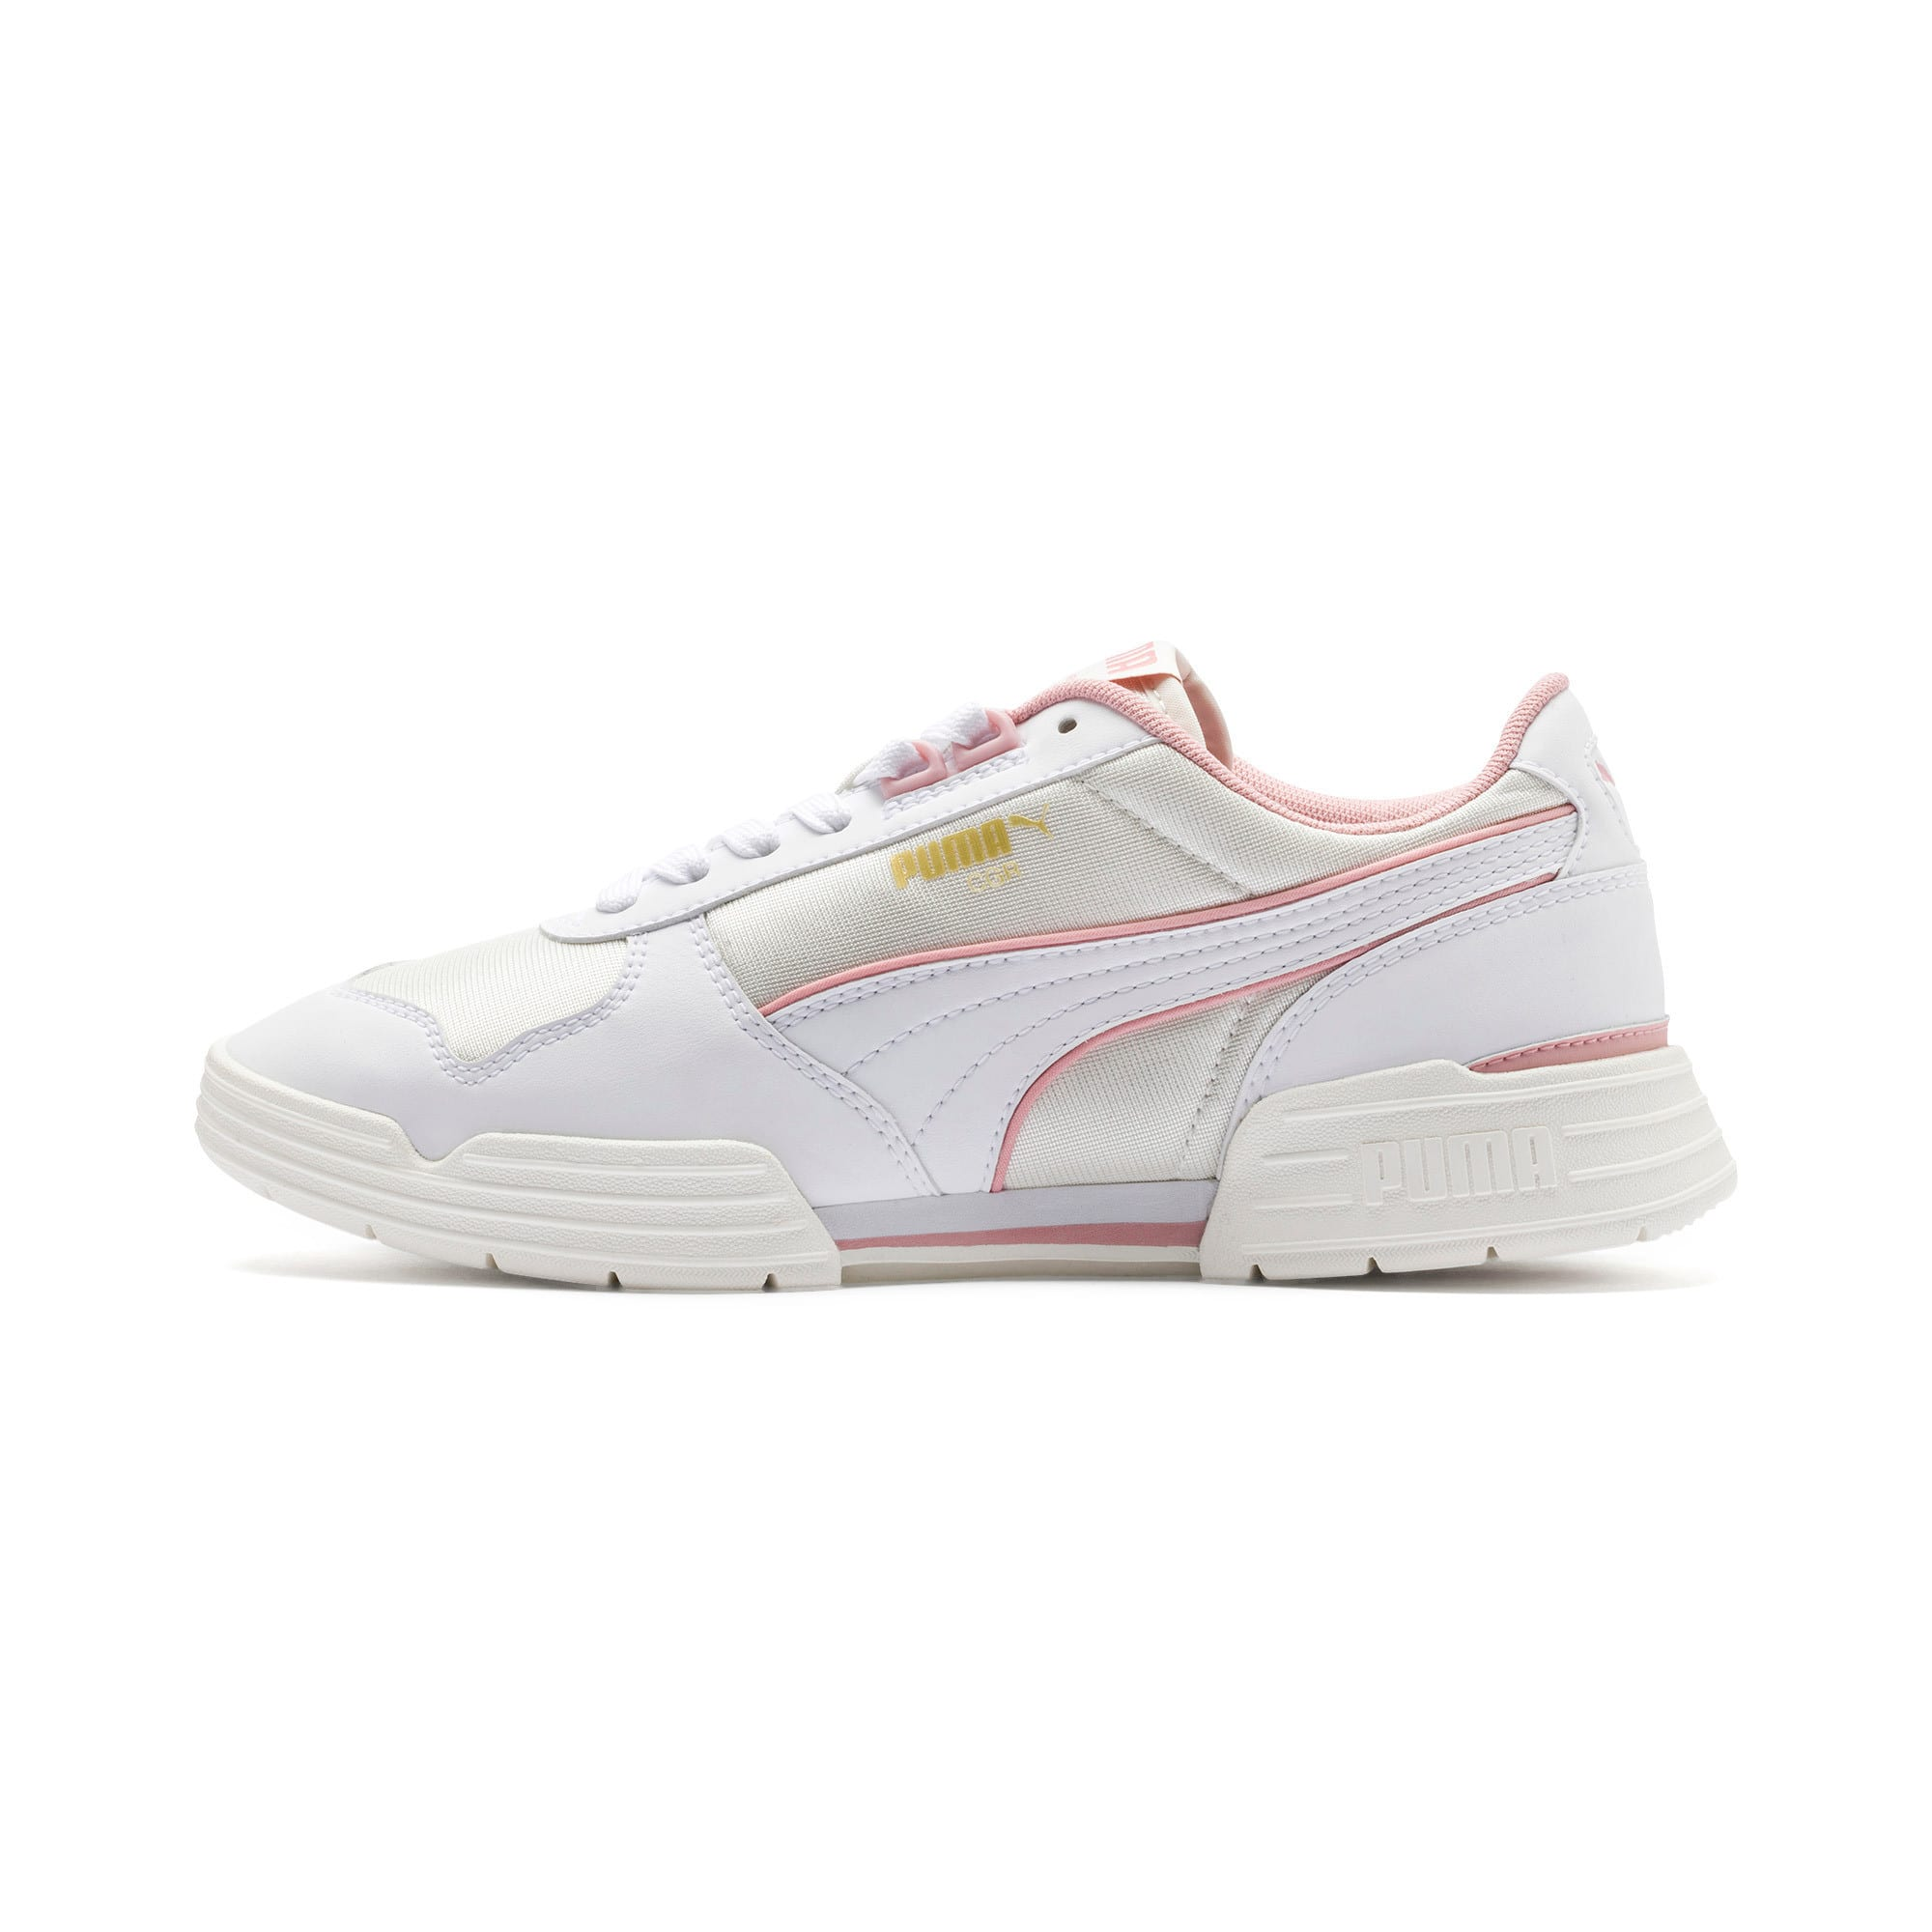 Thumbnail 1 of CGR Original Trainers, PWht-Bridal Rose-Marshmallow, medium-IND